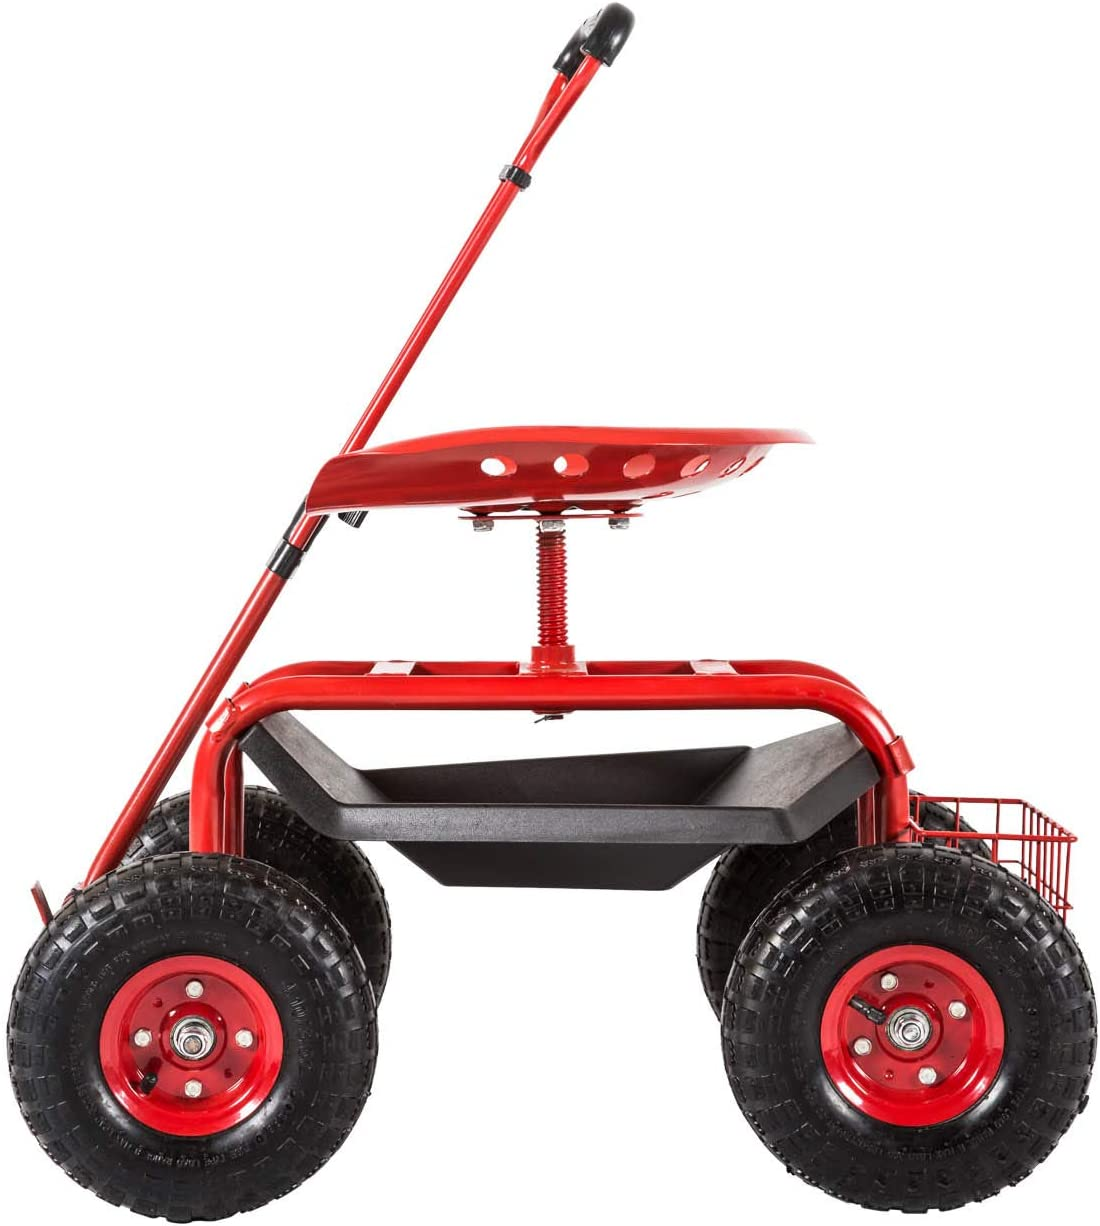 Kinsuite Garden Cart Rolling Work Seat Outdoor Utility Lawn Yard Patio Wagon Scooter for Planting, Adjustable Handle 360 Degree Swivel Seat Red